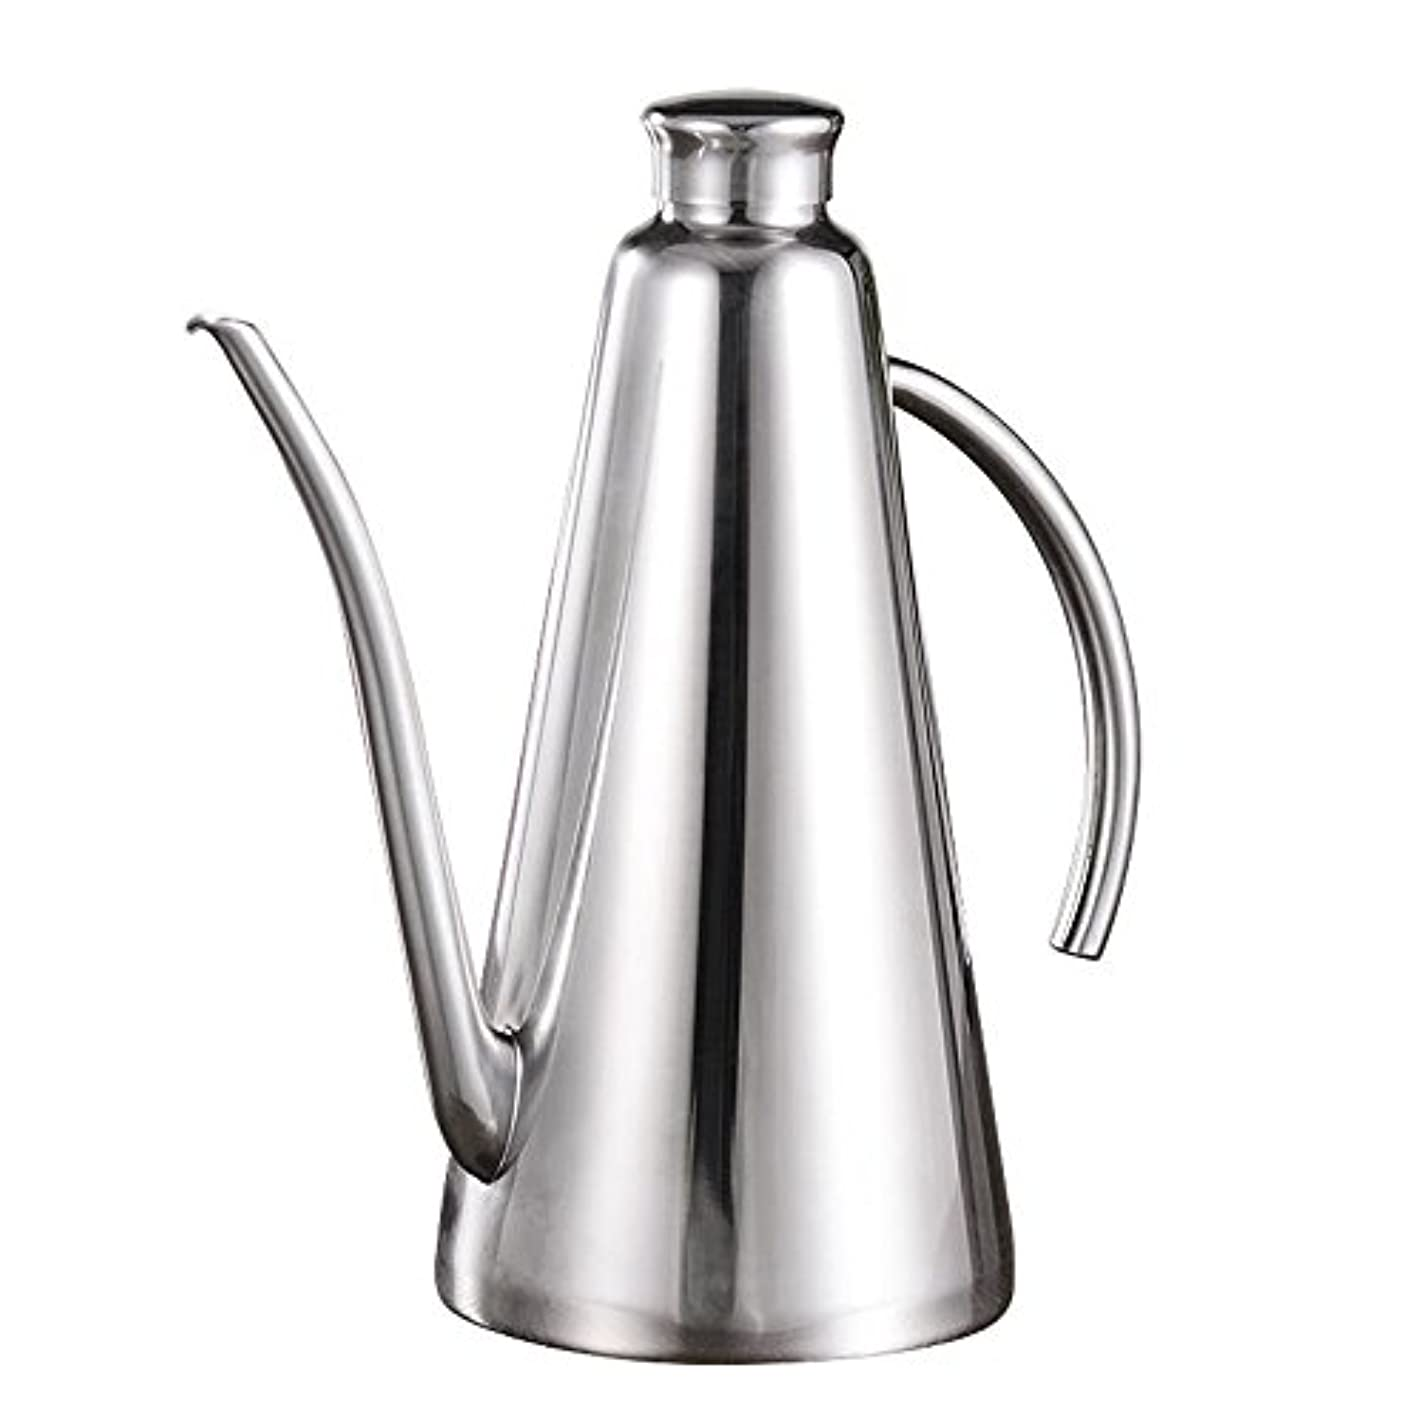 MyLifeUNIT 1 Quart Olive Oil Dispenser, Stainless Steel Olive Oil Can Drizzler with Drip-free Spout